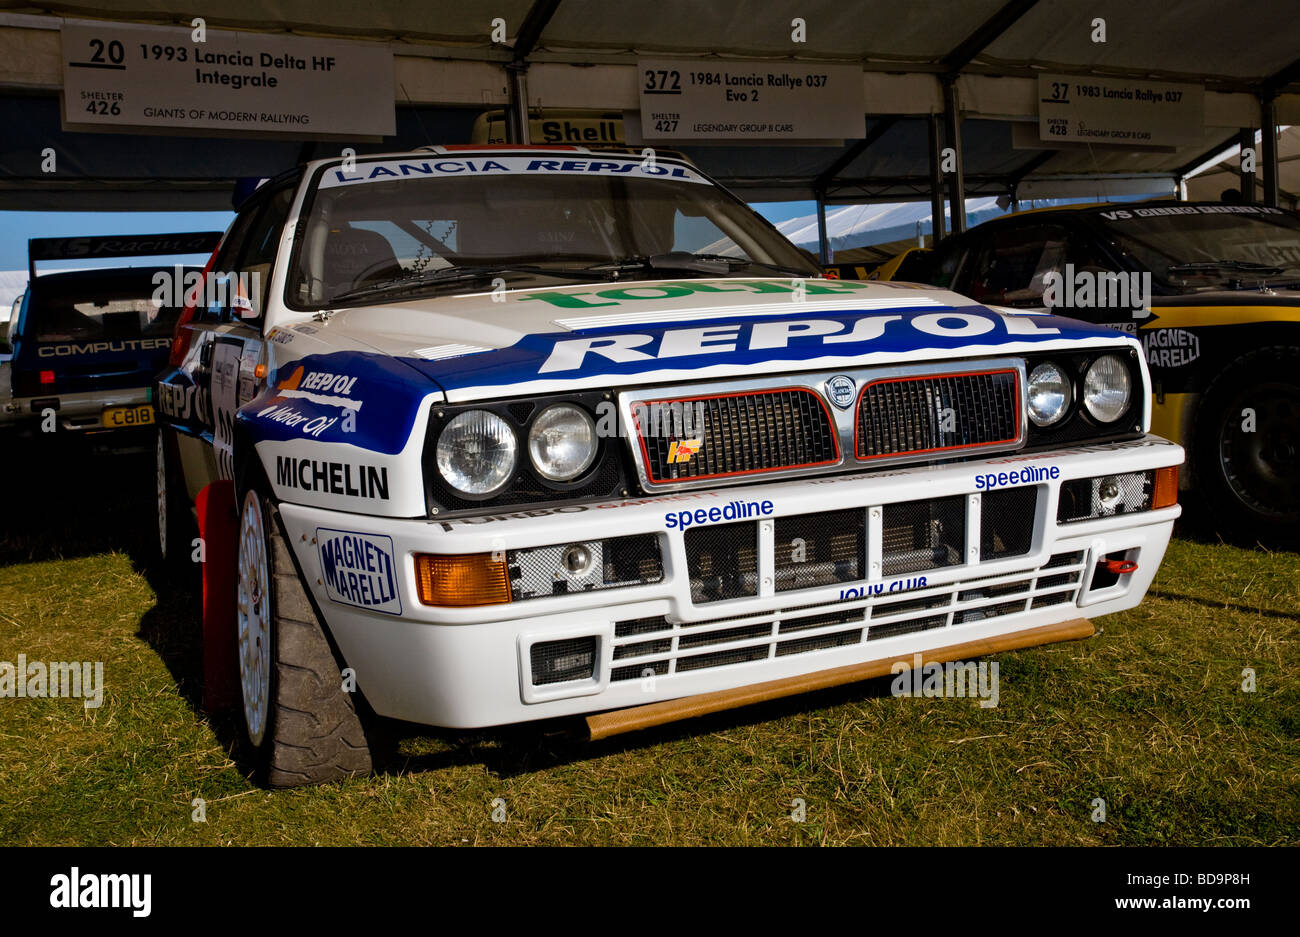 1993 lancia delta hf intergrale rally car in the paddock at 1993 lancia delta hf intergrale rally car in the paddock at goodwood festival of speed sussex uk vanachro Gallery